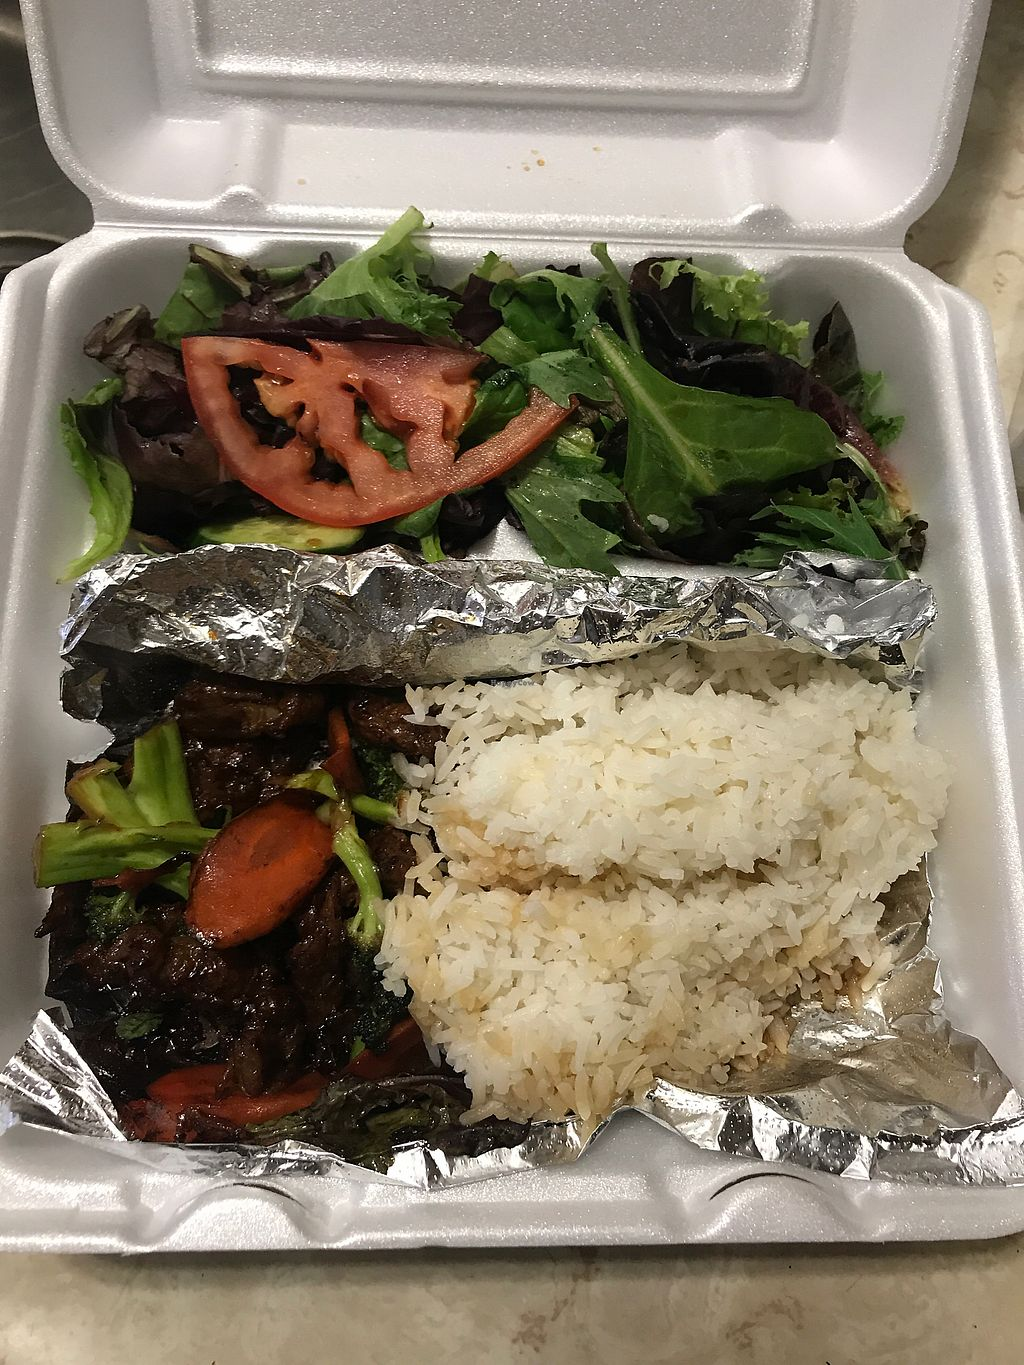 """Photo of Nibi Pho Bistro  by <a href=""""/members/profile/Vegan_Ness"""">Vegan_Ness</a> <br/>Vegan Chicken w/ Rice <br/> June 28, 2017  - <a href='/contact/abuse/image/67822/274555'>Report</a>"""